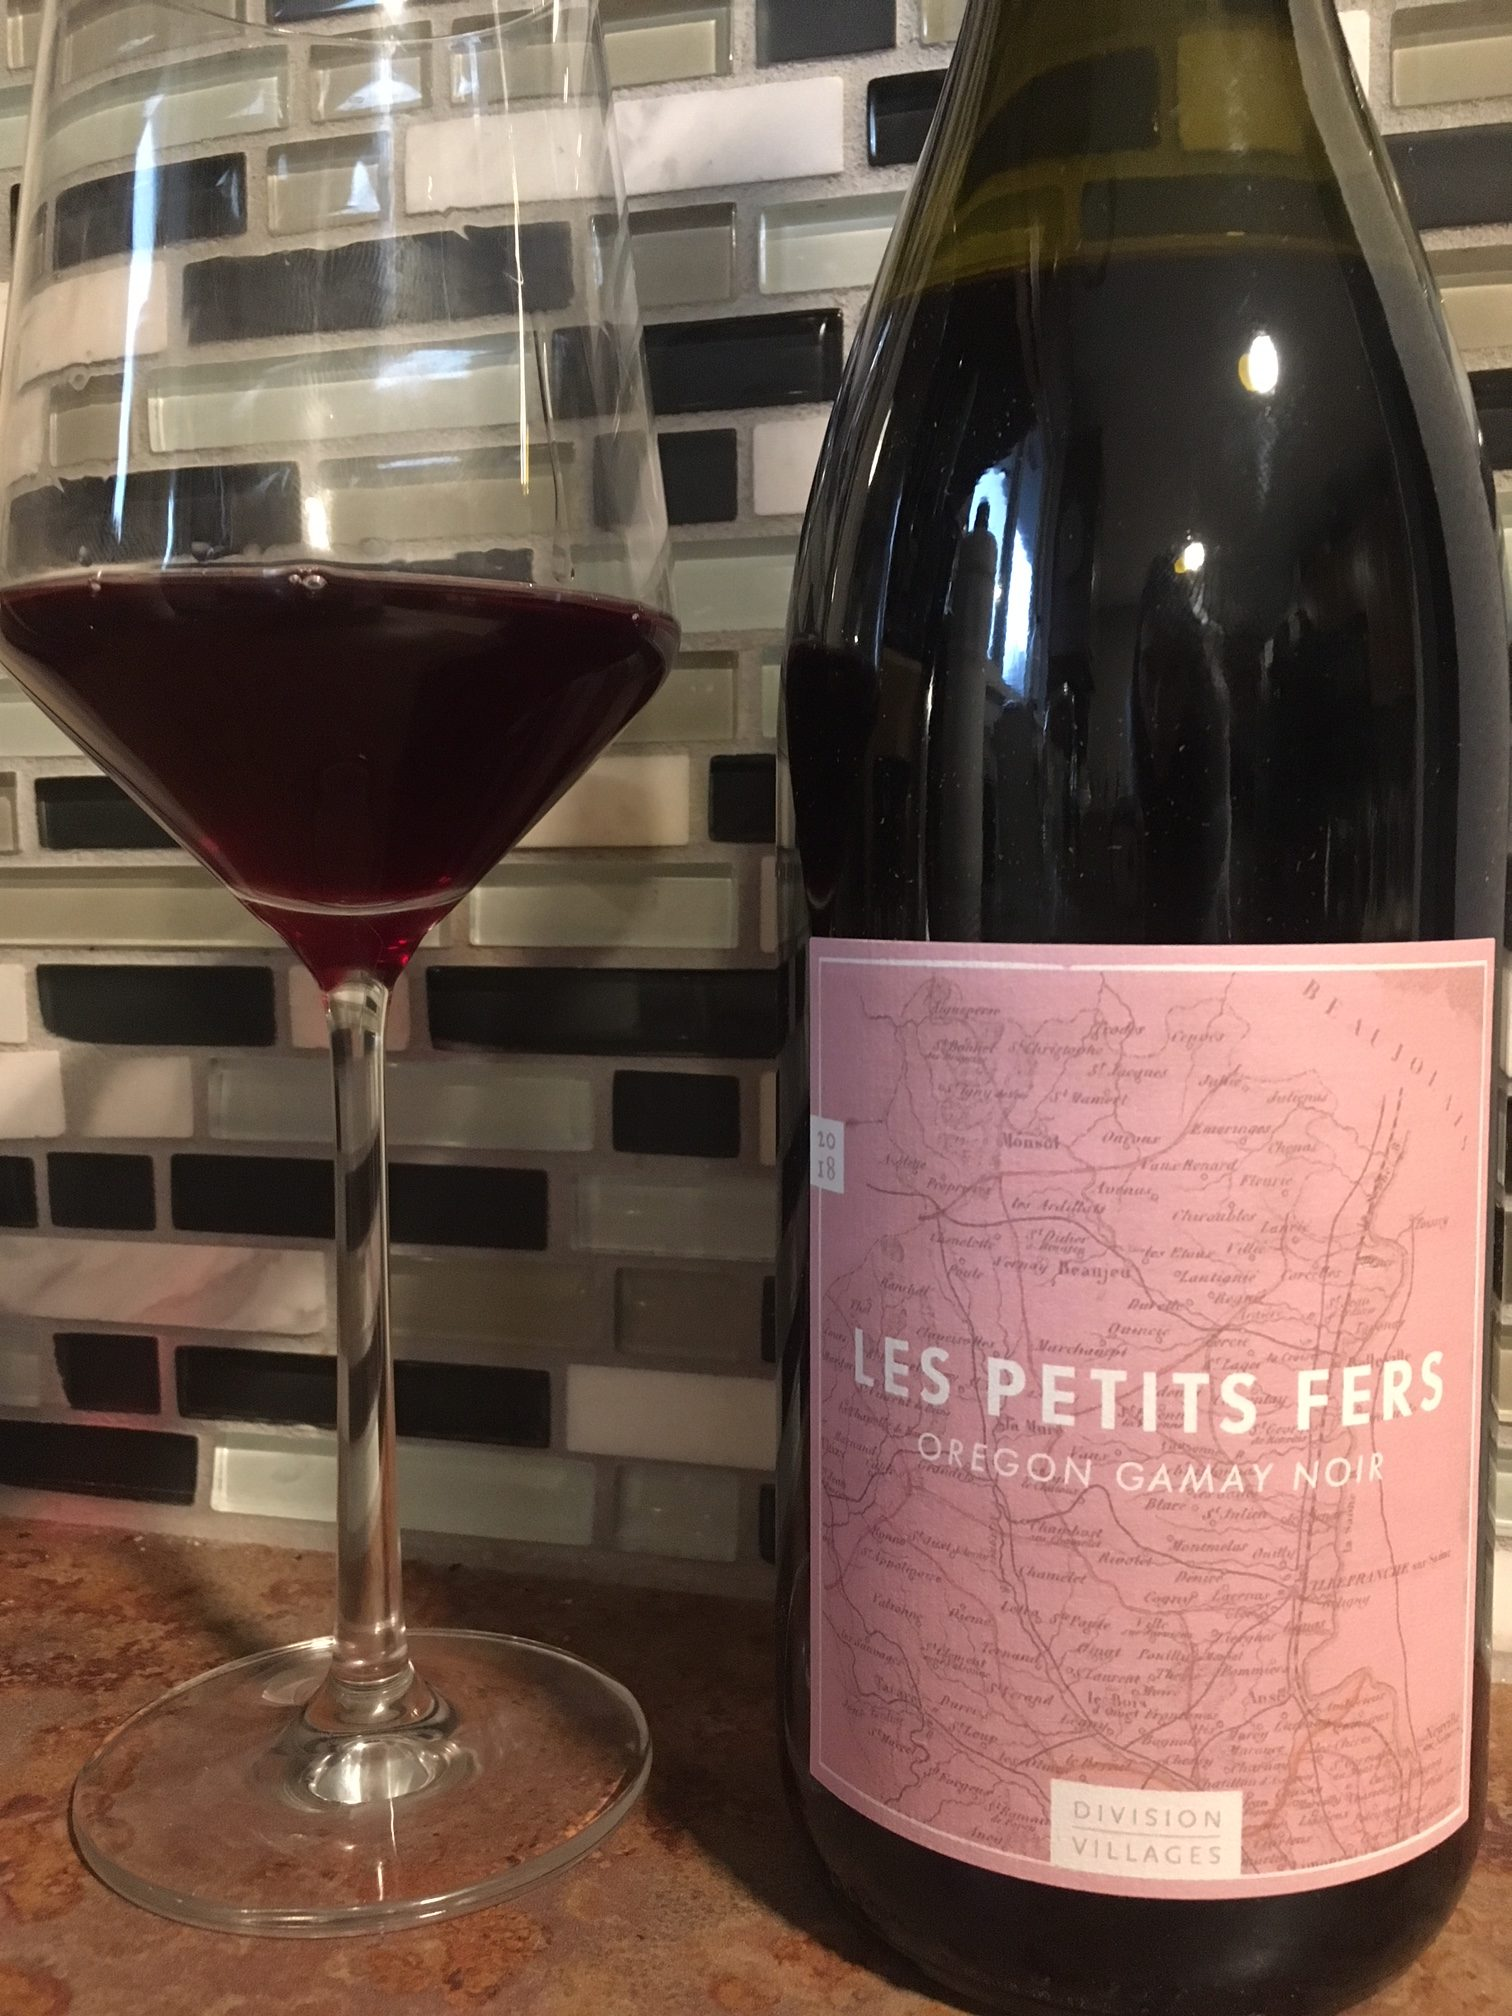 1409401efc23 Classic Gamay notes of strawberry and white pepper.